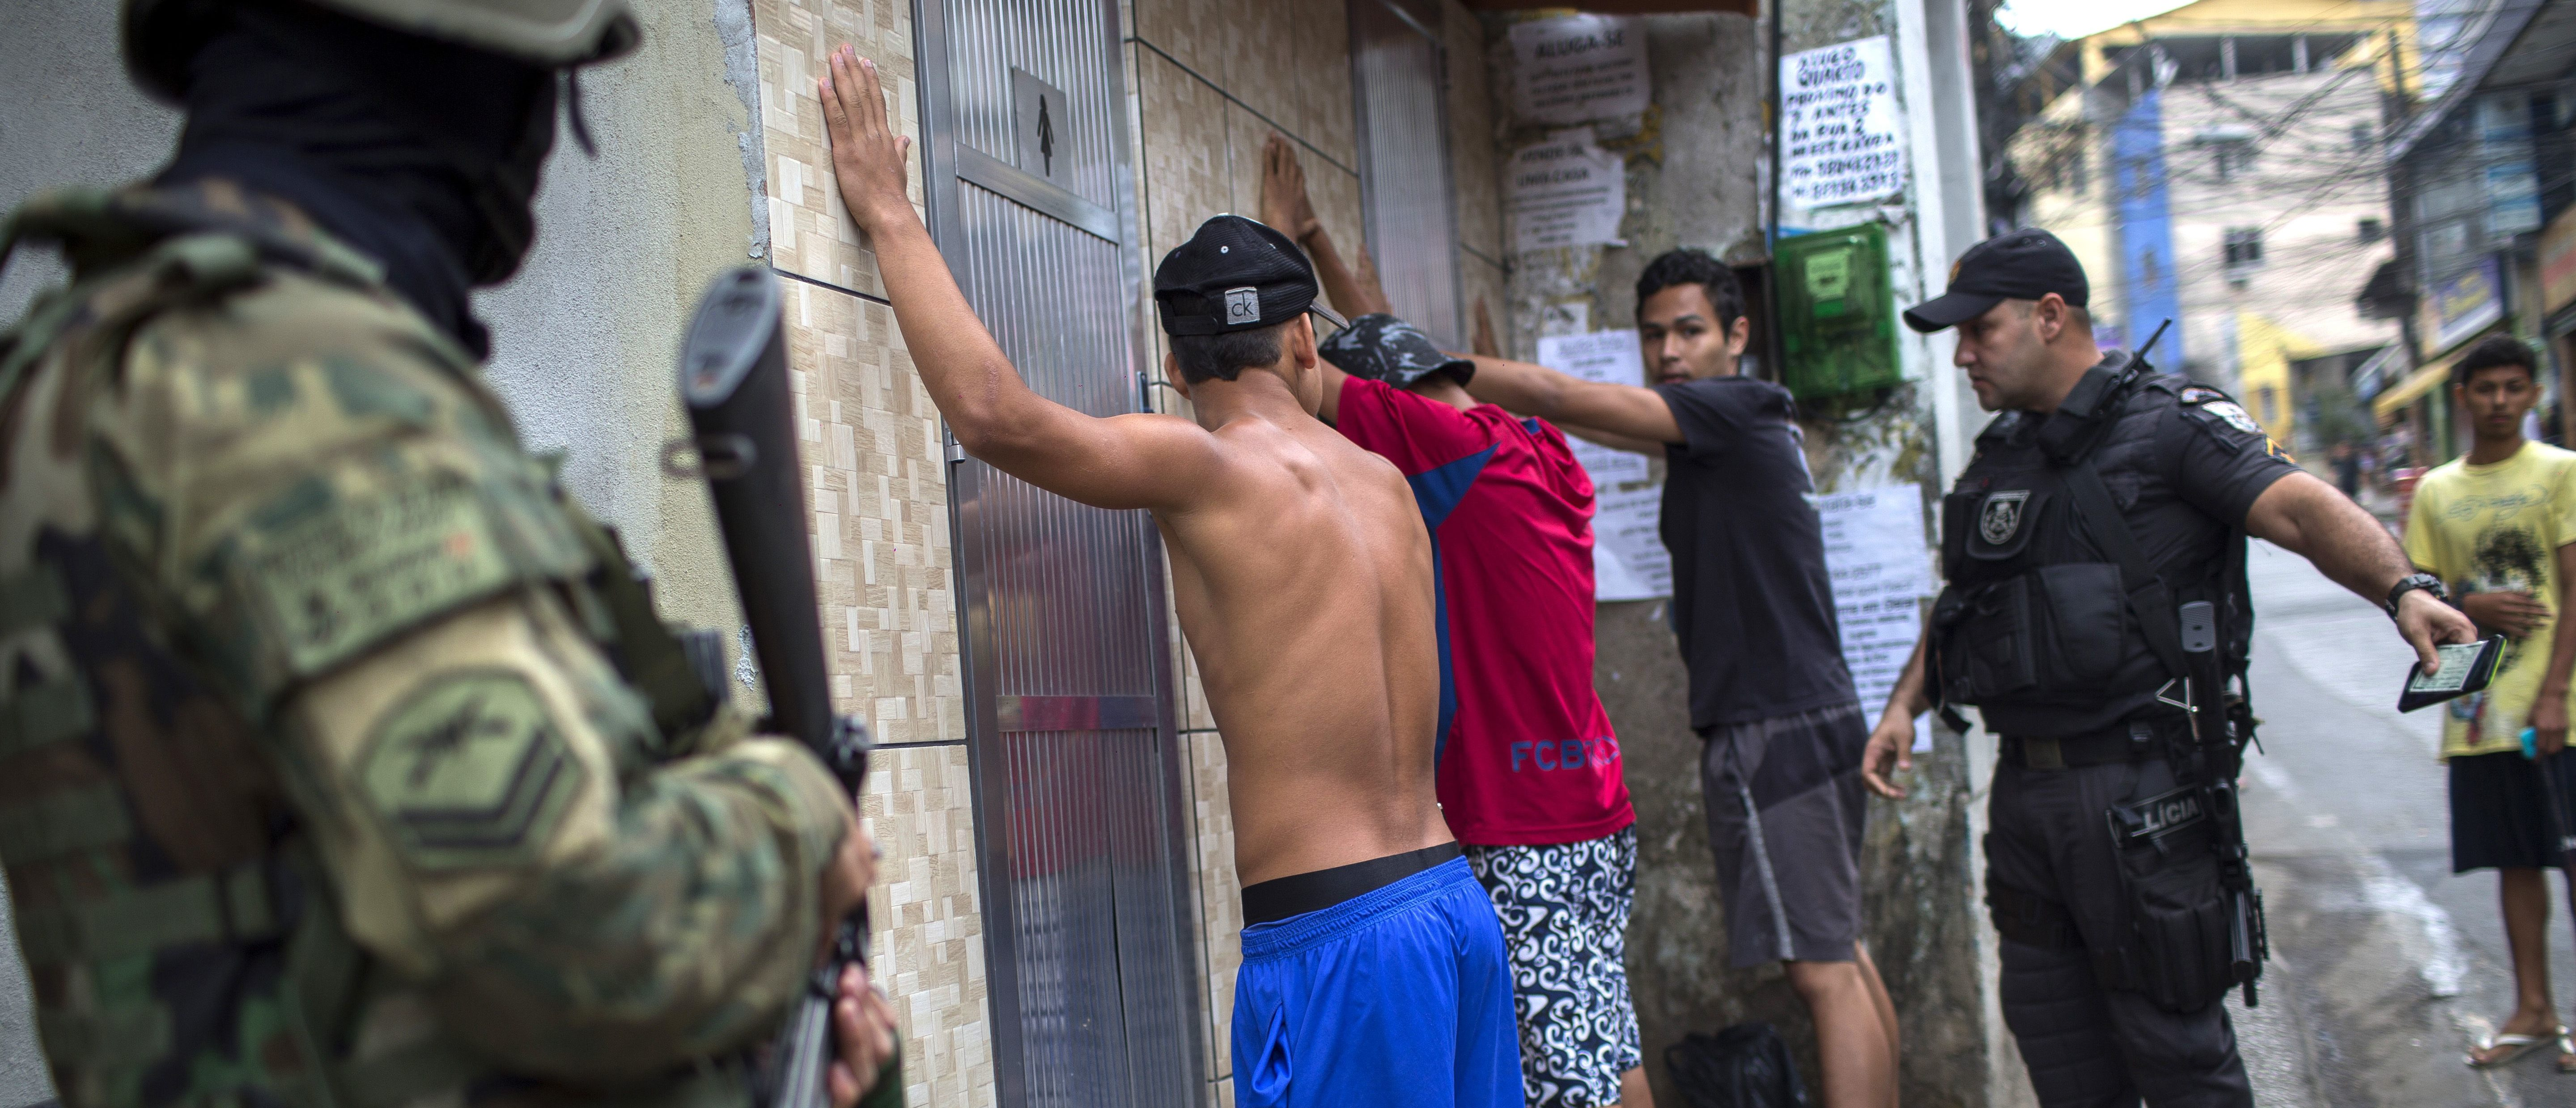 Brazilian marines and police special forces personnel check the IDs of three youngster during a patrol along a street of the Rocinha favela in Rio de Janeiro, Brazil on September 24, 2017.